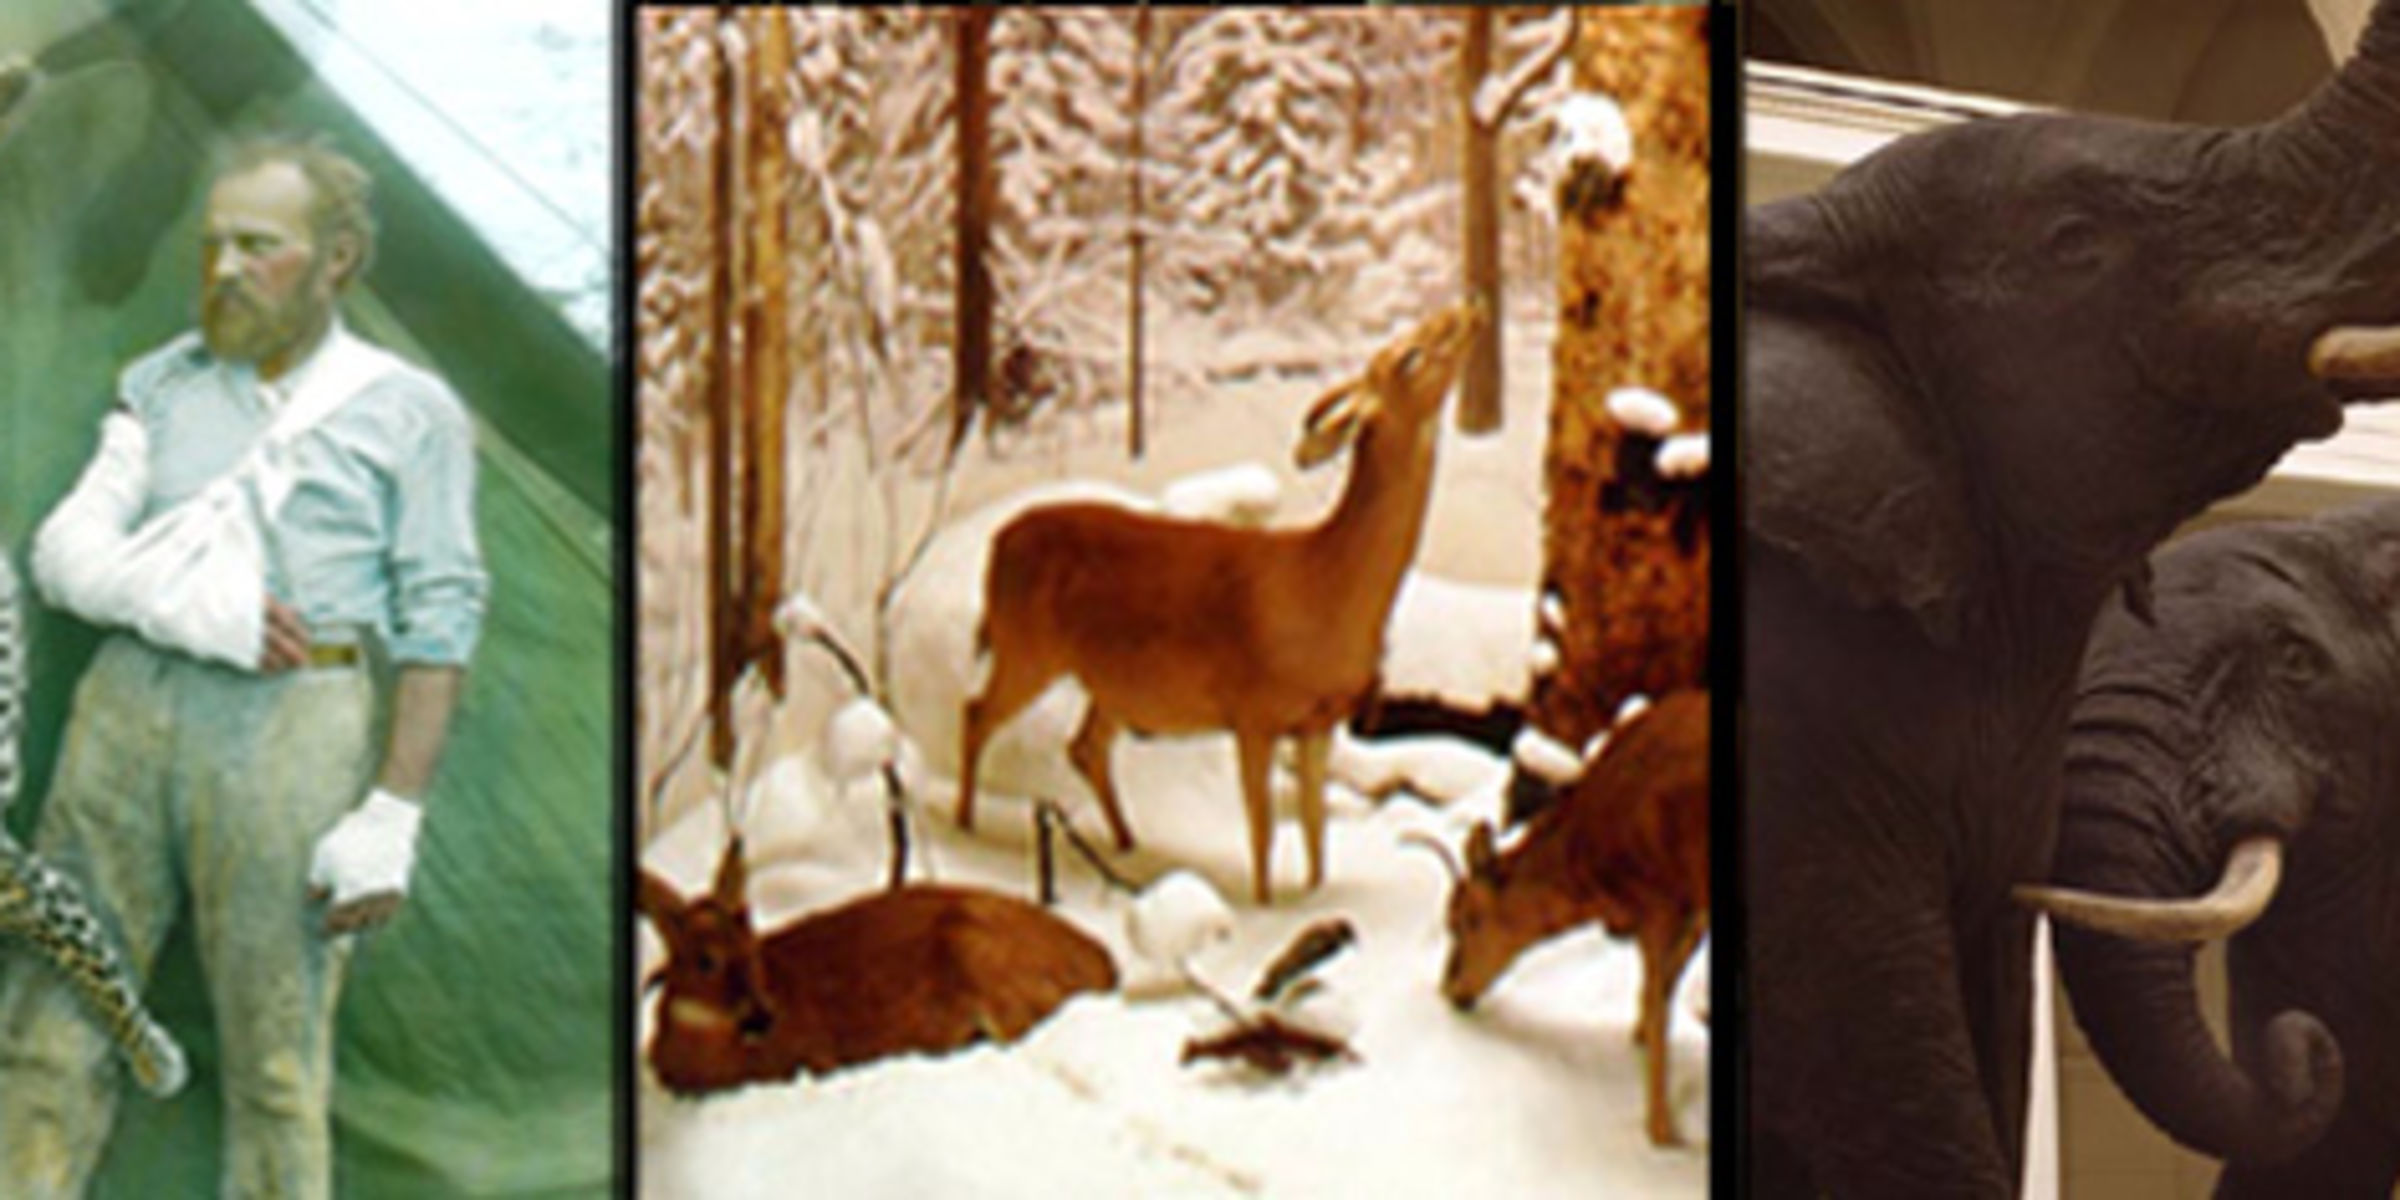 """A composite of three photographs related to taxidermist Carl Akeley: Akeley standing near a leopard he killed, one scene from the """"Four Seasons of the Deer"""" diorama, and a view of African elephants."""